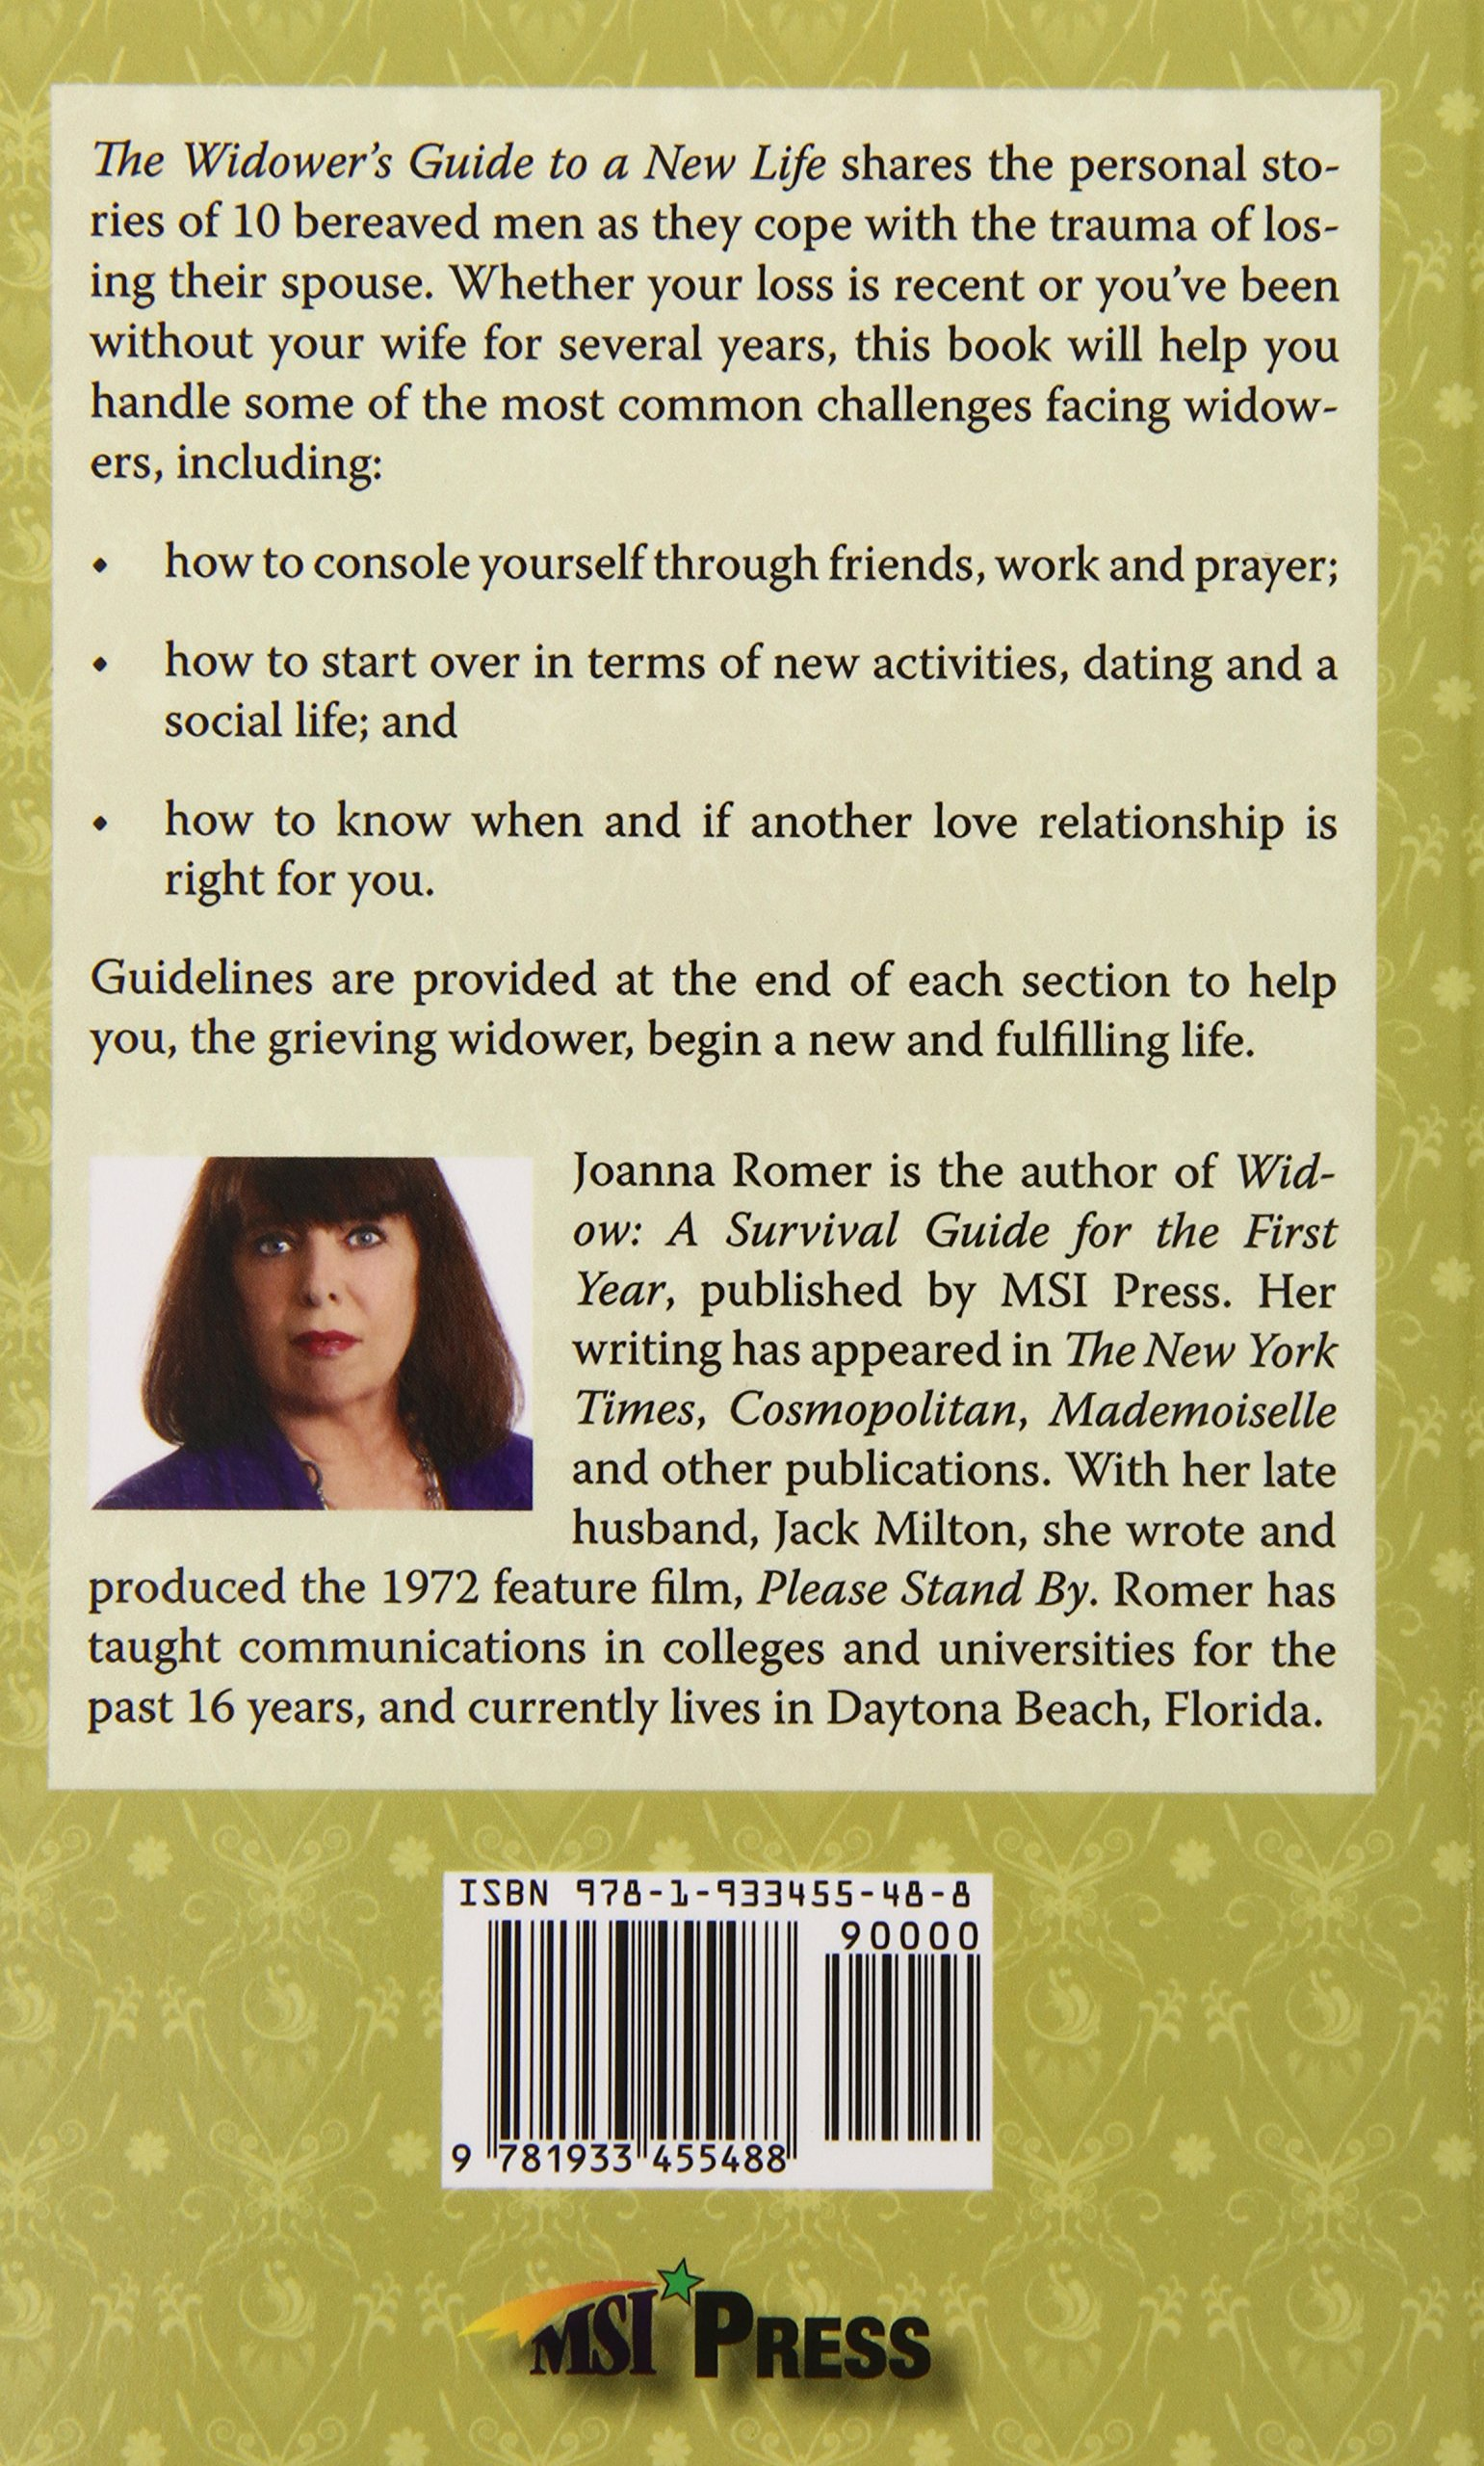 The Widower's Guide To A New Life: Joanna Romer: 9781933455488: Amazon:  Books